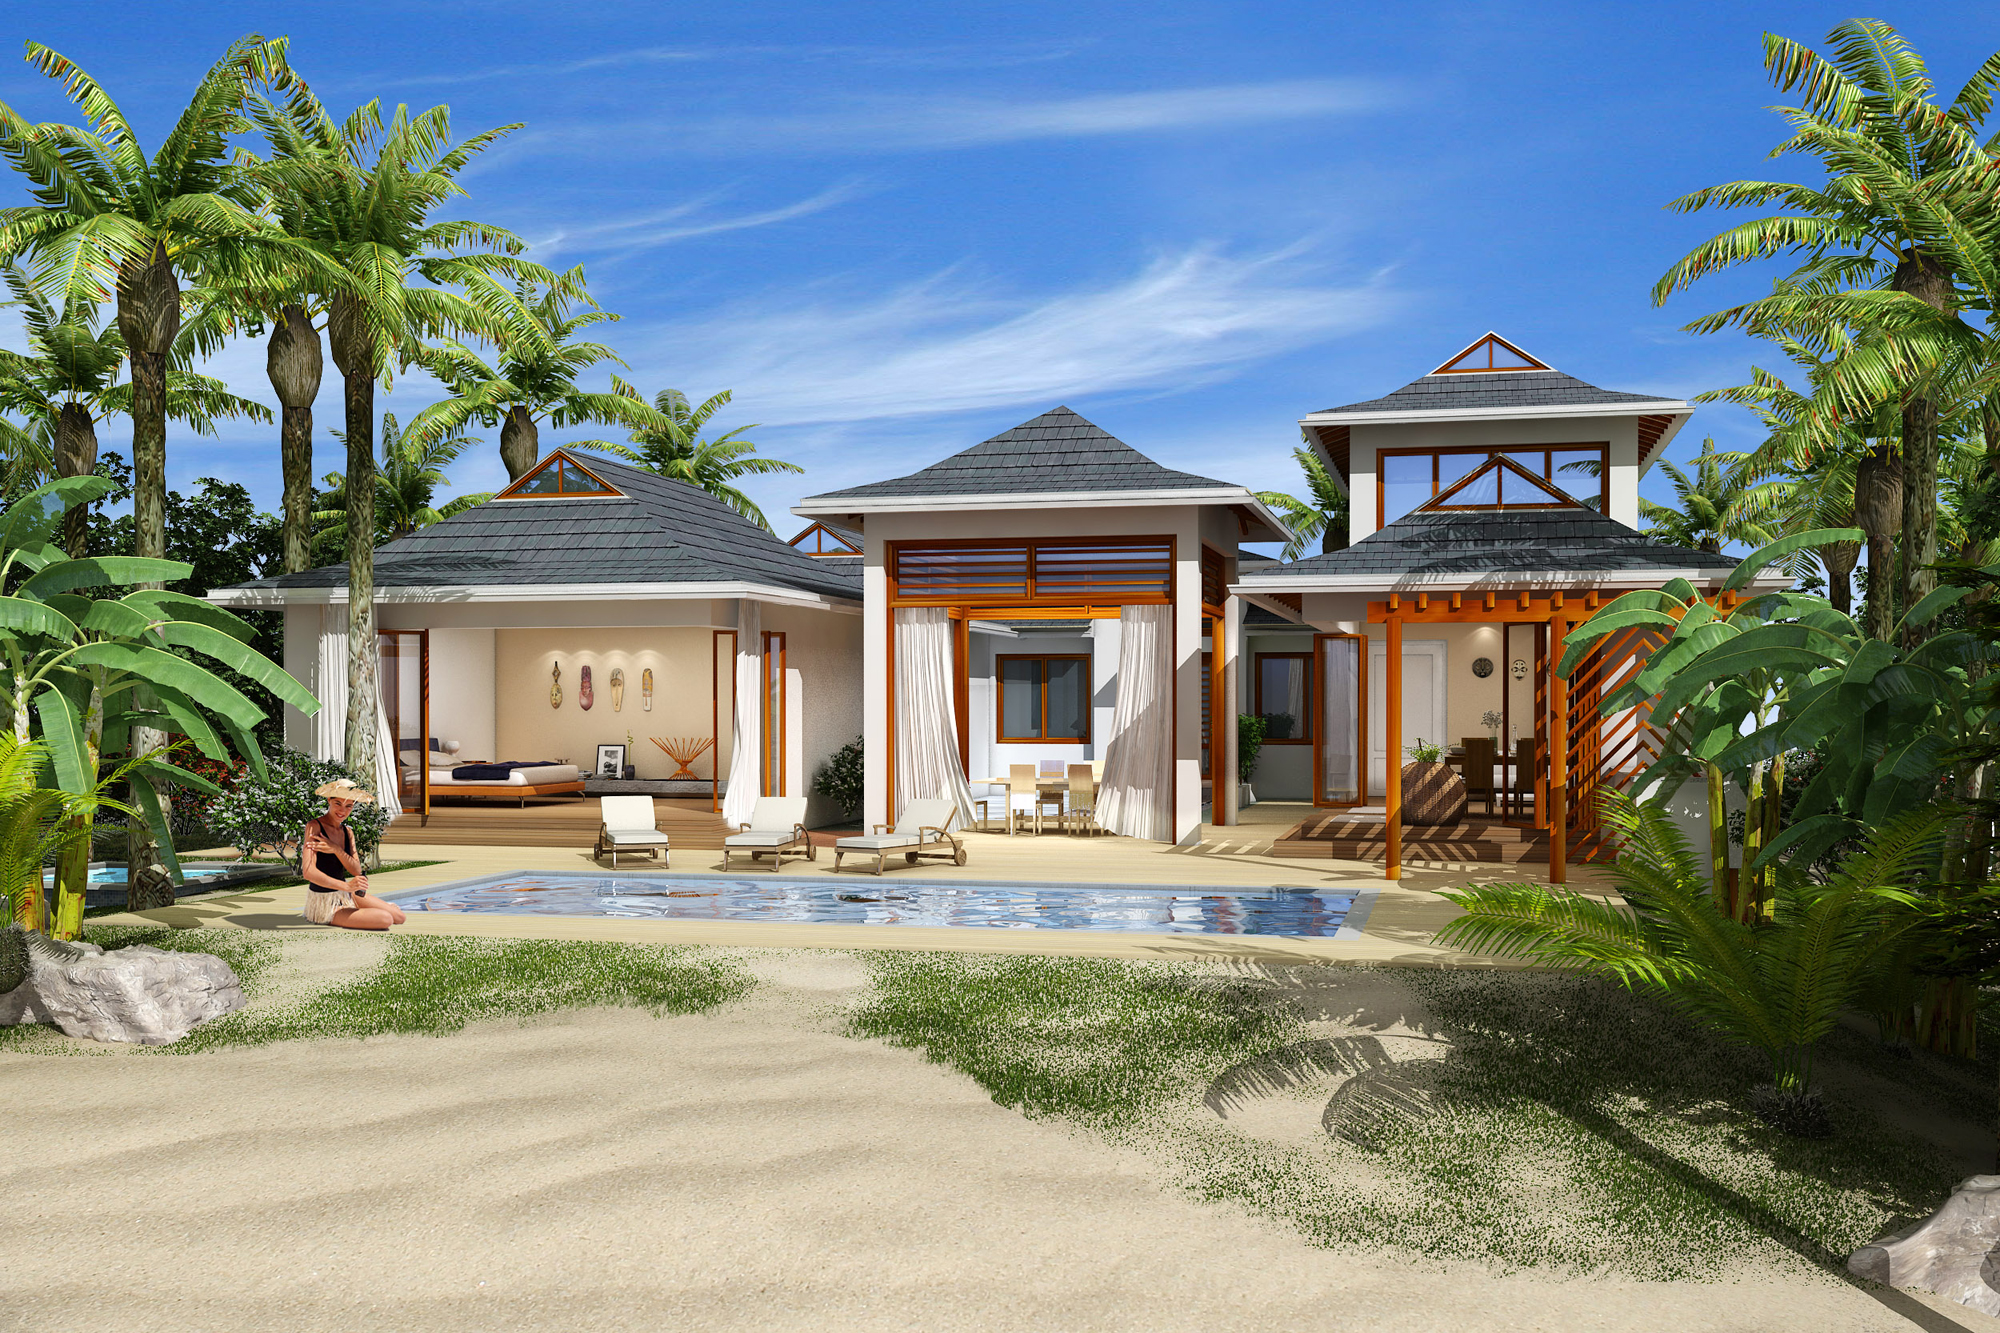 Single Family Home for Sale at Pre-Construction Polynesian Villa East End, Cayman Islands